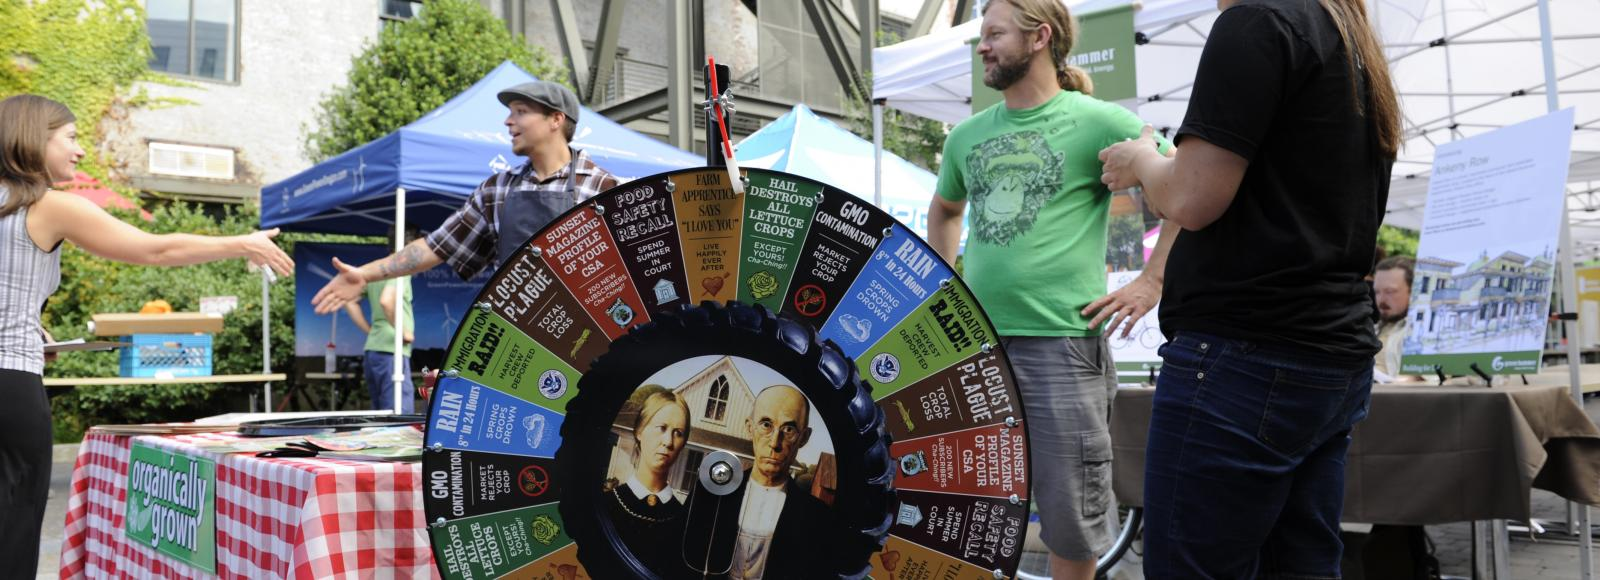 spinning raffle wheel with organically grown booth in the background